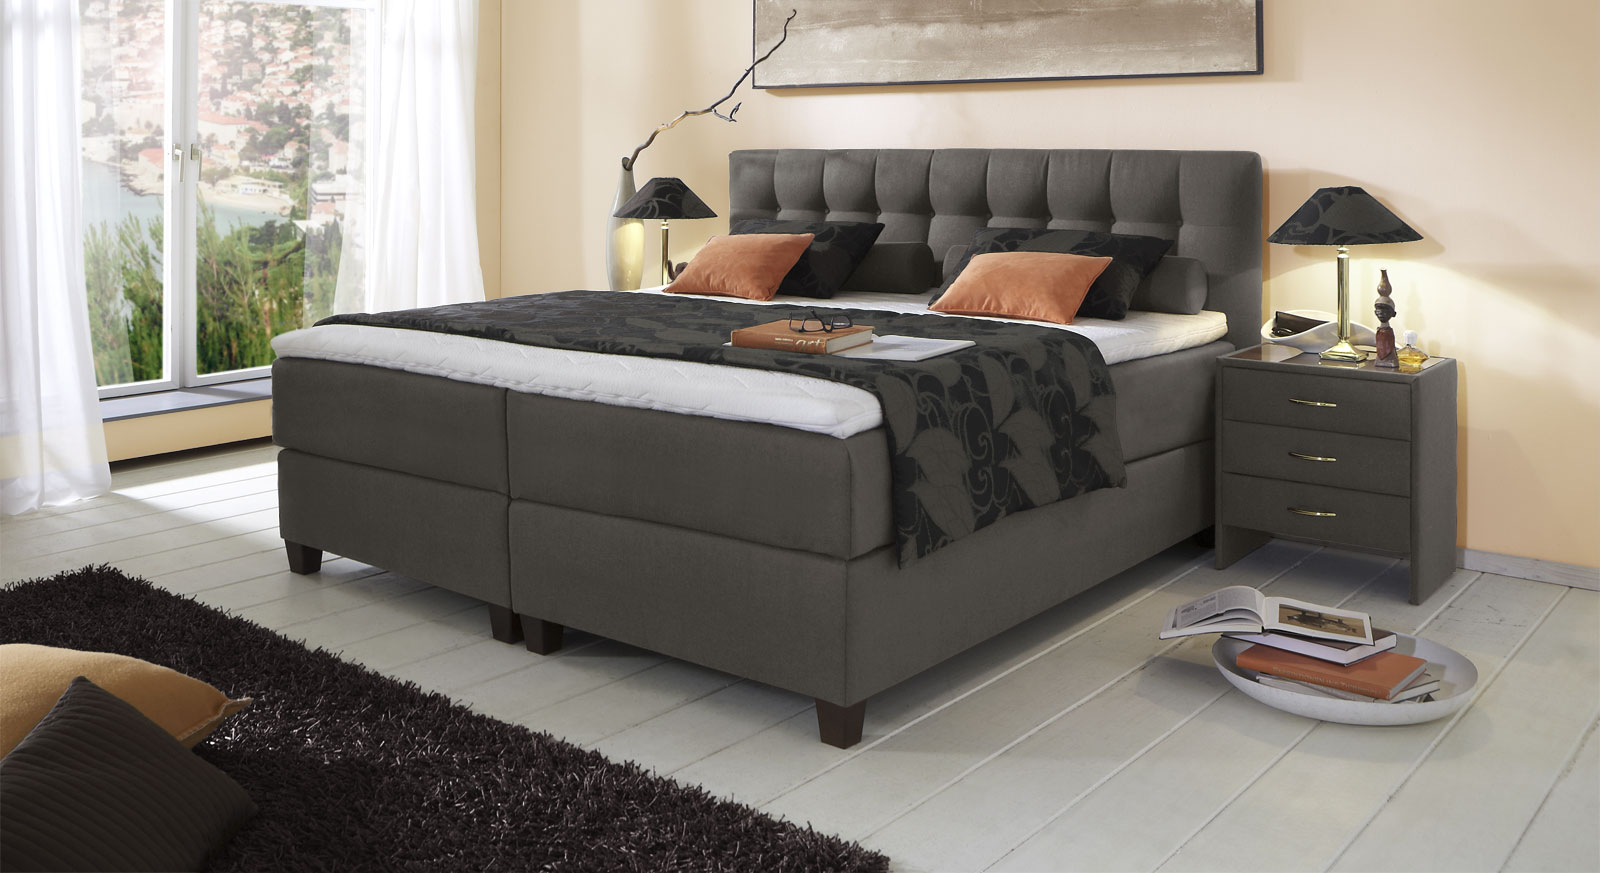 boxspringbett luciano z b in gr e 180x200cm. Black Bedroom Furniture Sets. Home Design Ideas